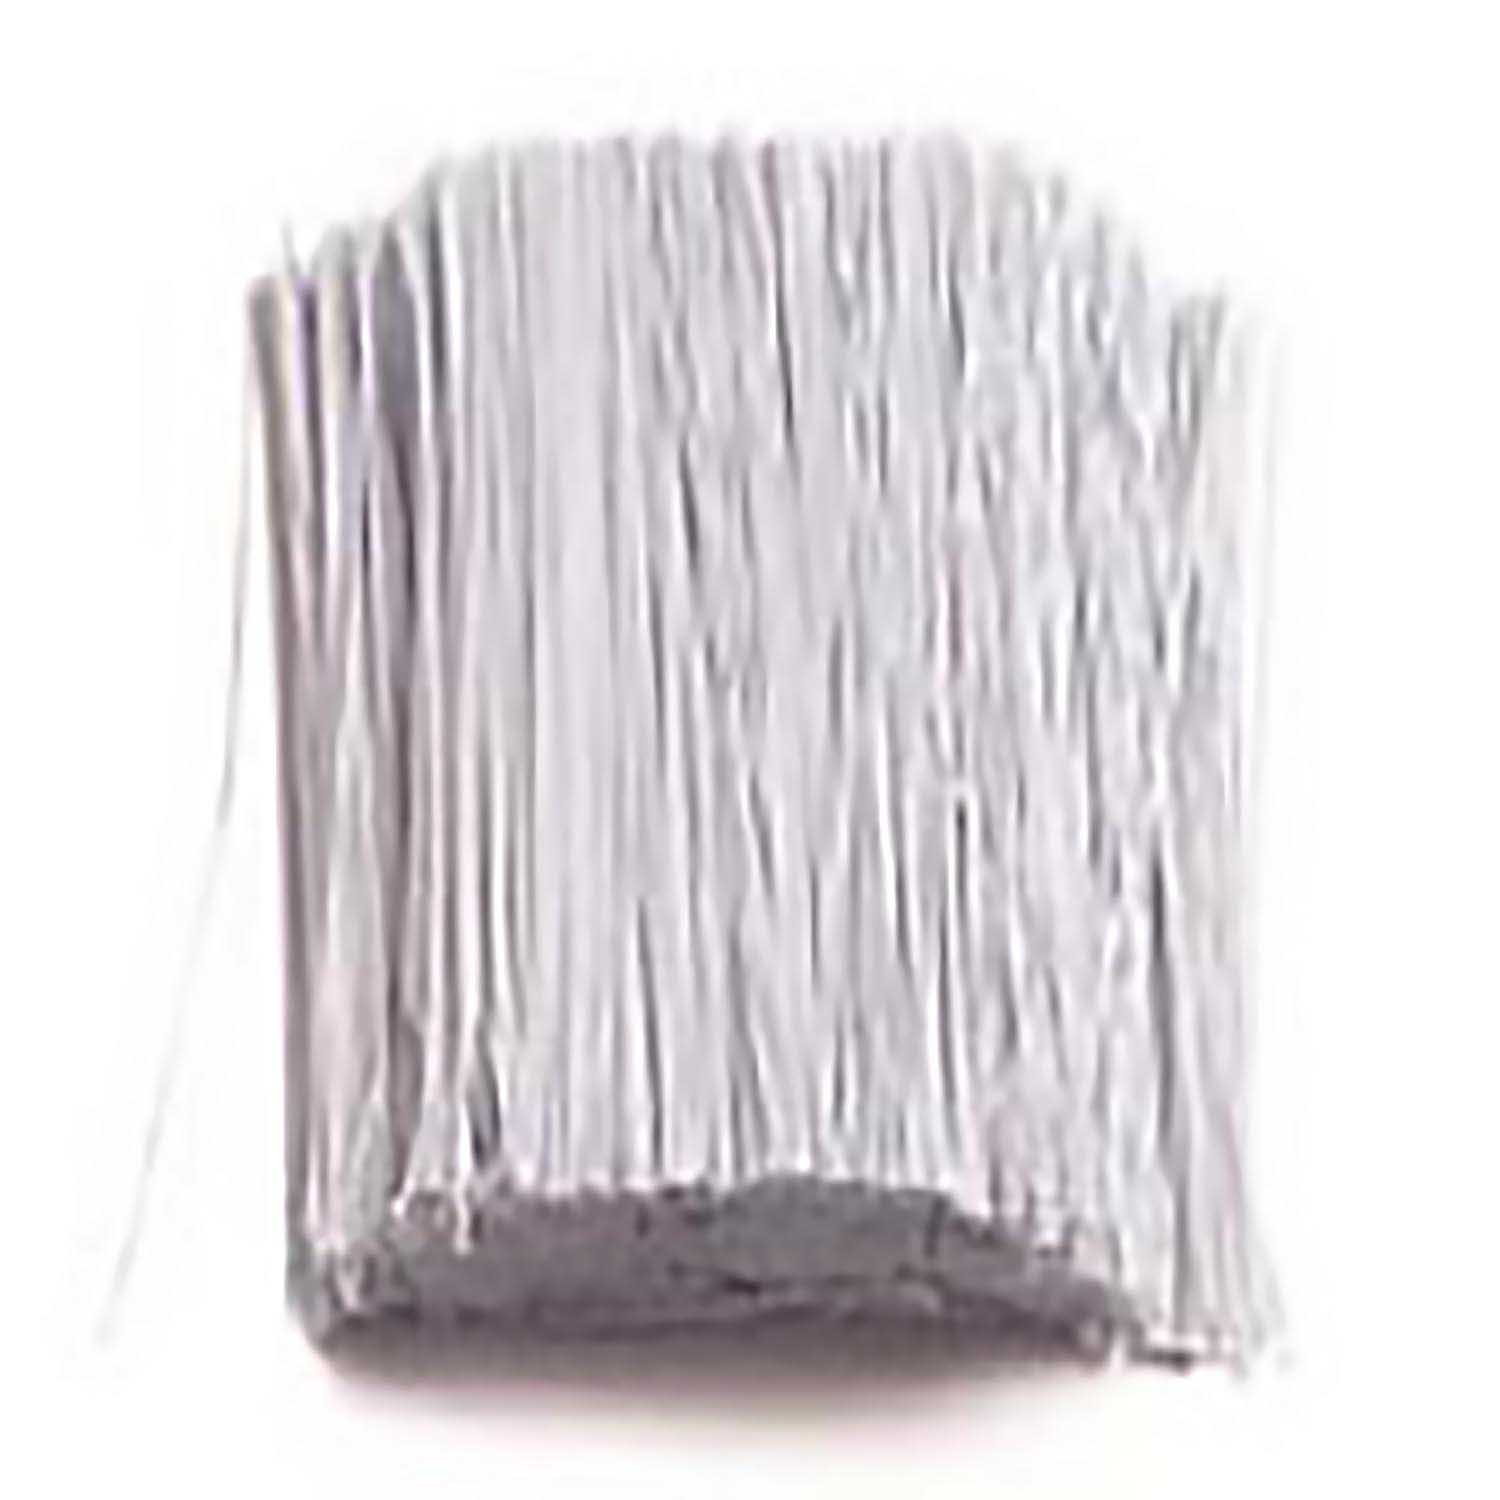 24 Gauge White 6in Covered Wire